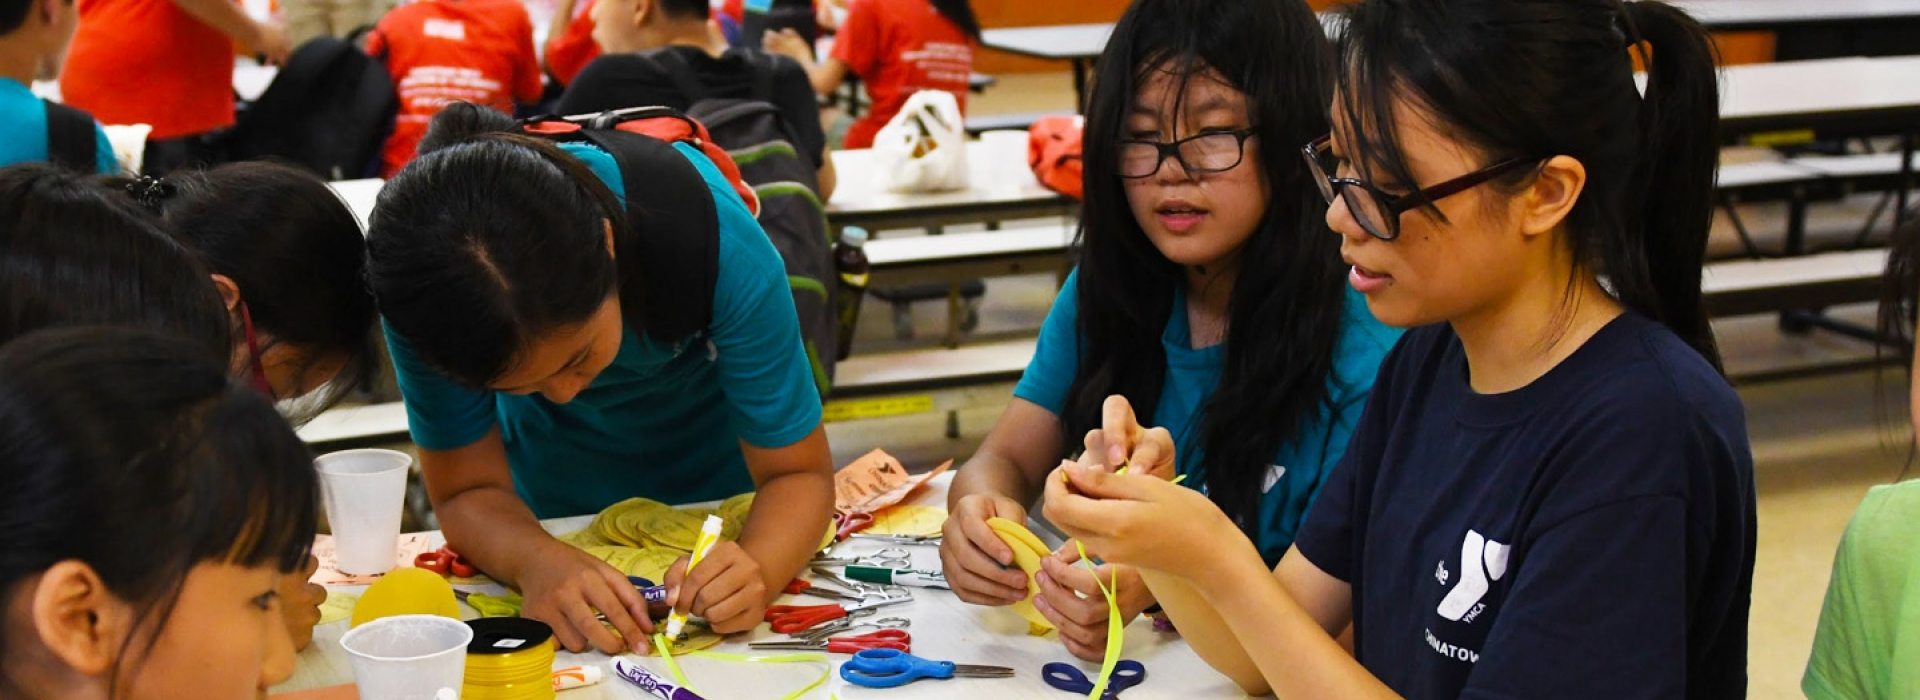 8c7f15888 Campers work on arts and crafts at the Chinatown YMCA summer day camp.